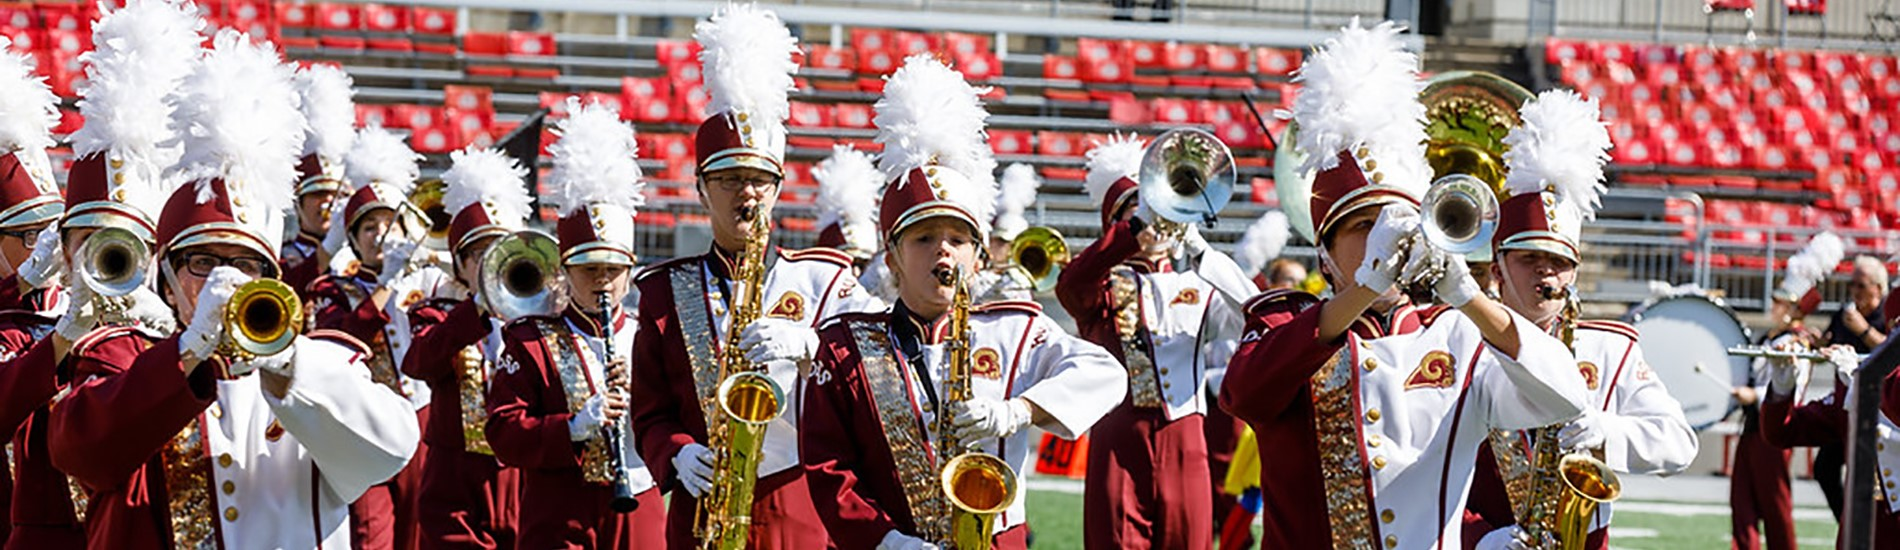 Ross High School Marching Band performing.